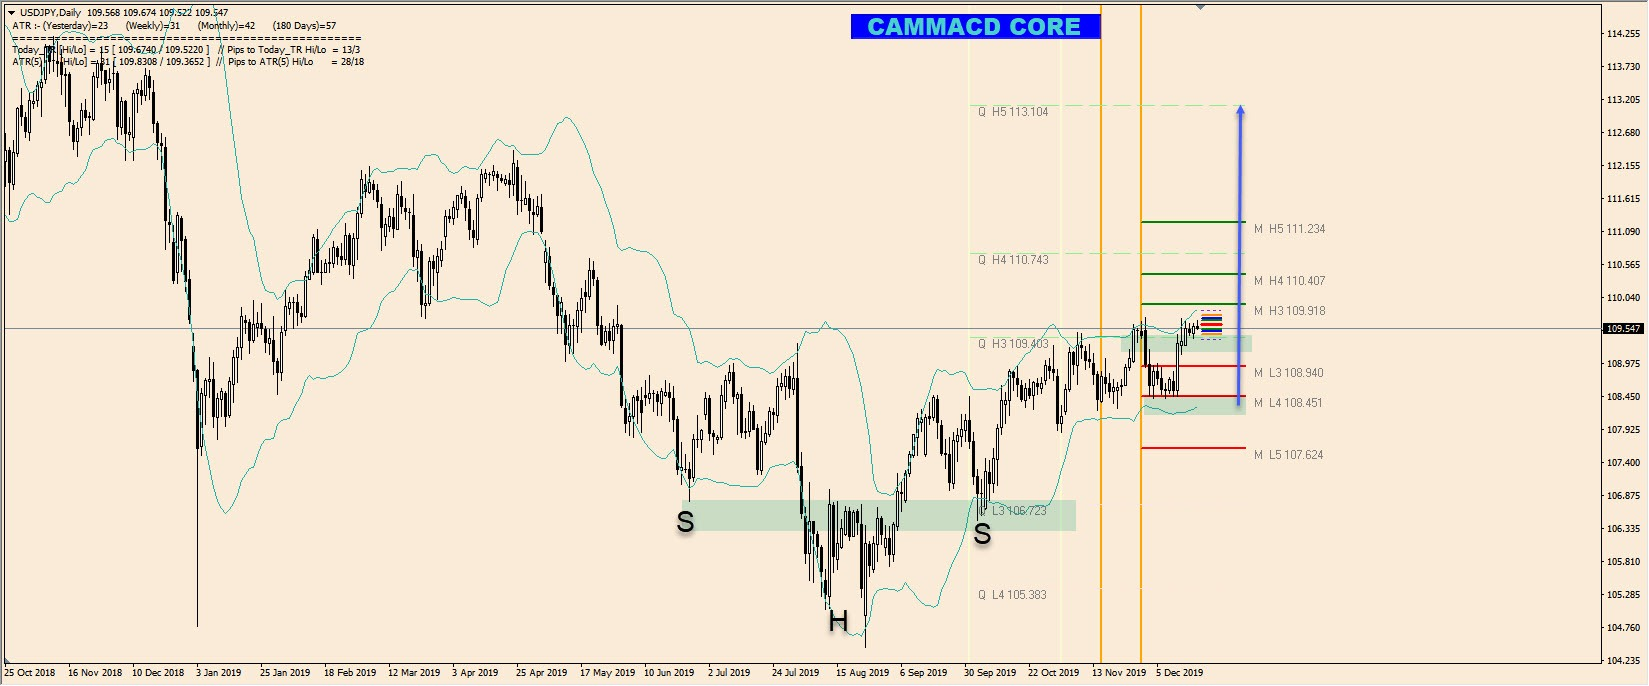 USD/JPY Price Analysis 2020 - Camarilla Pivot Points